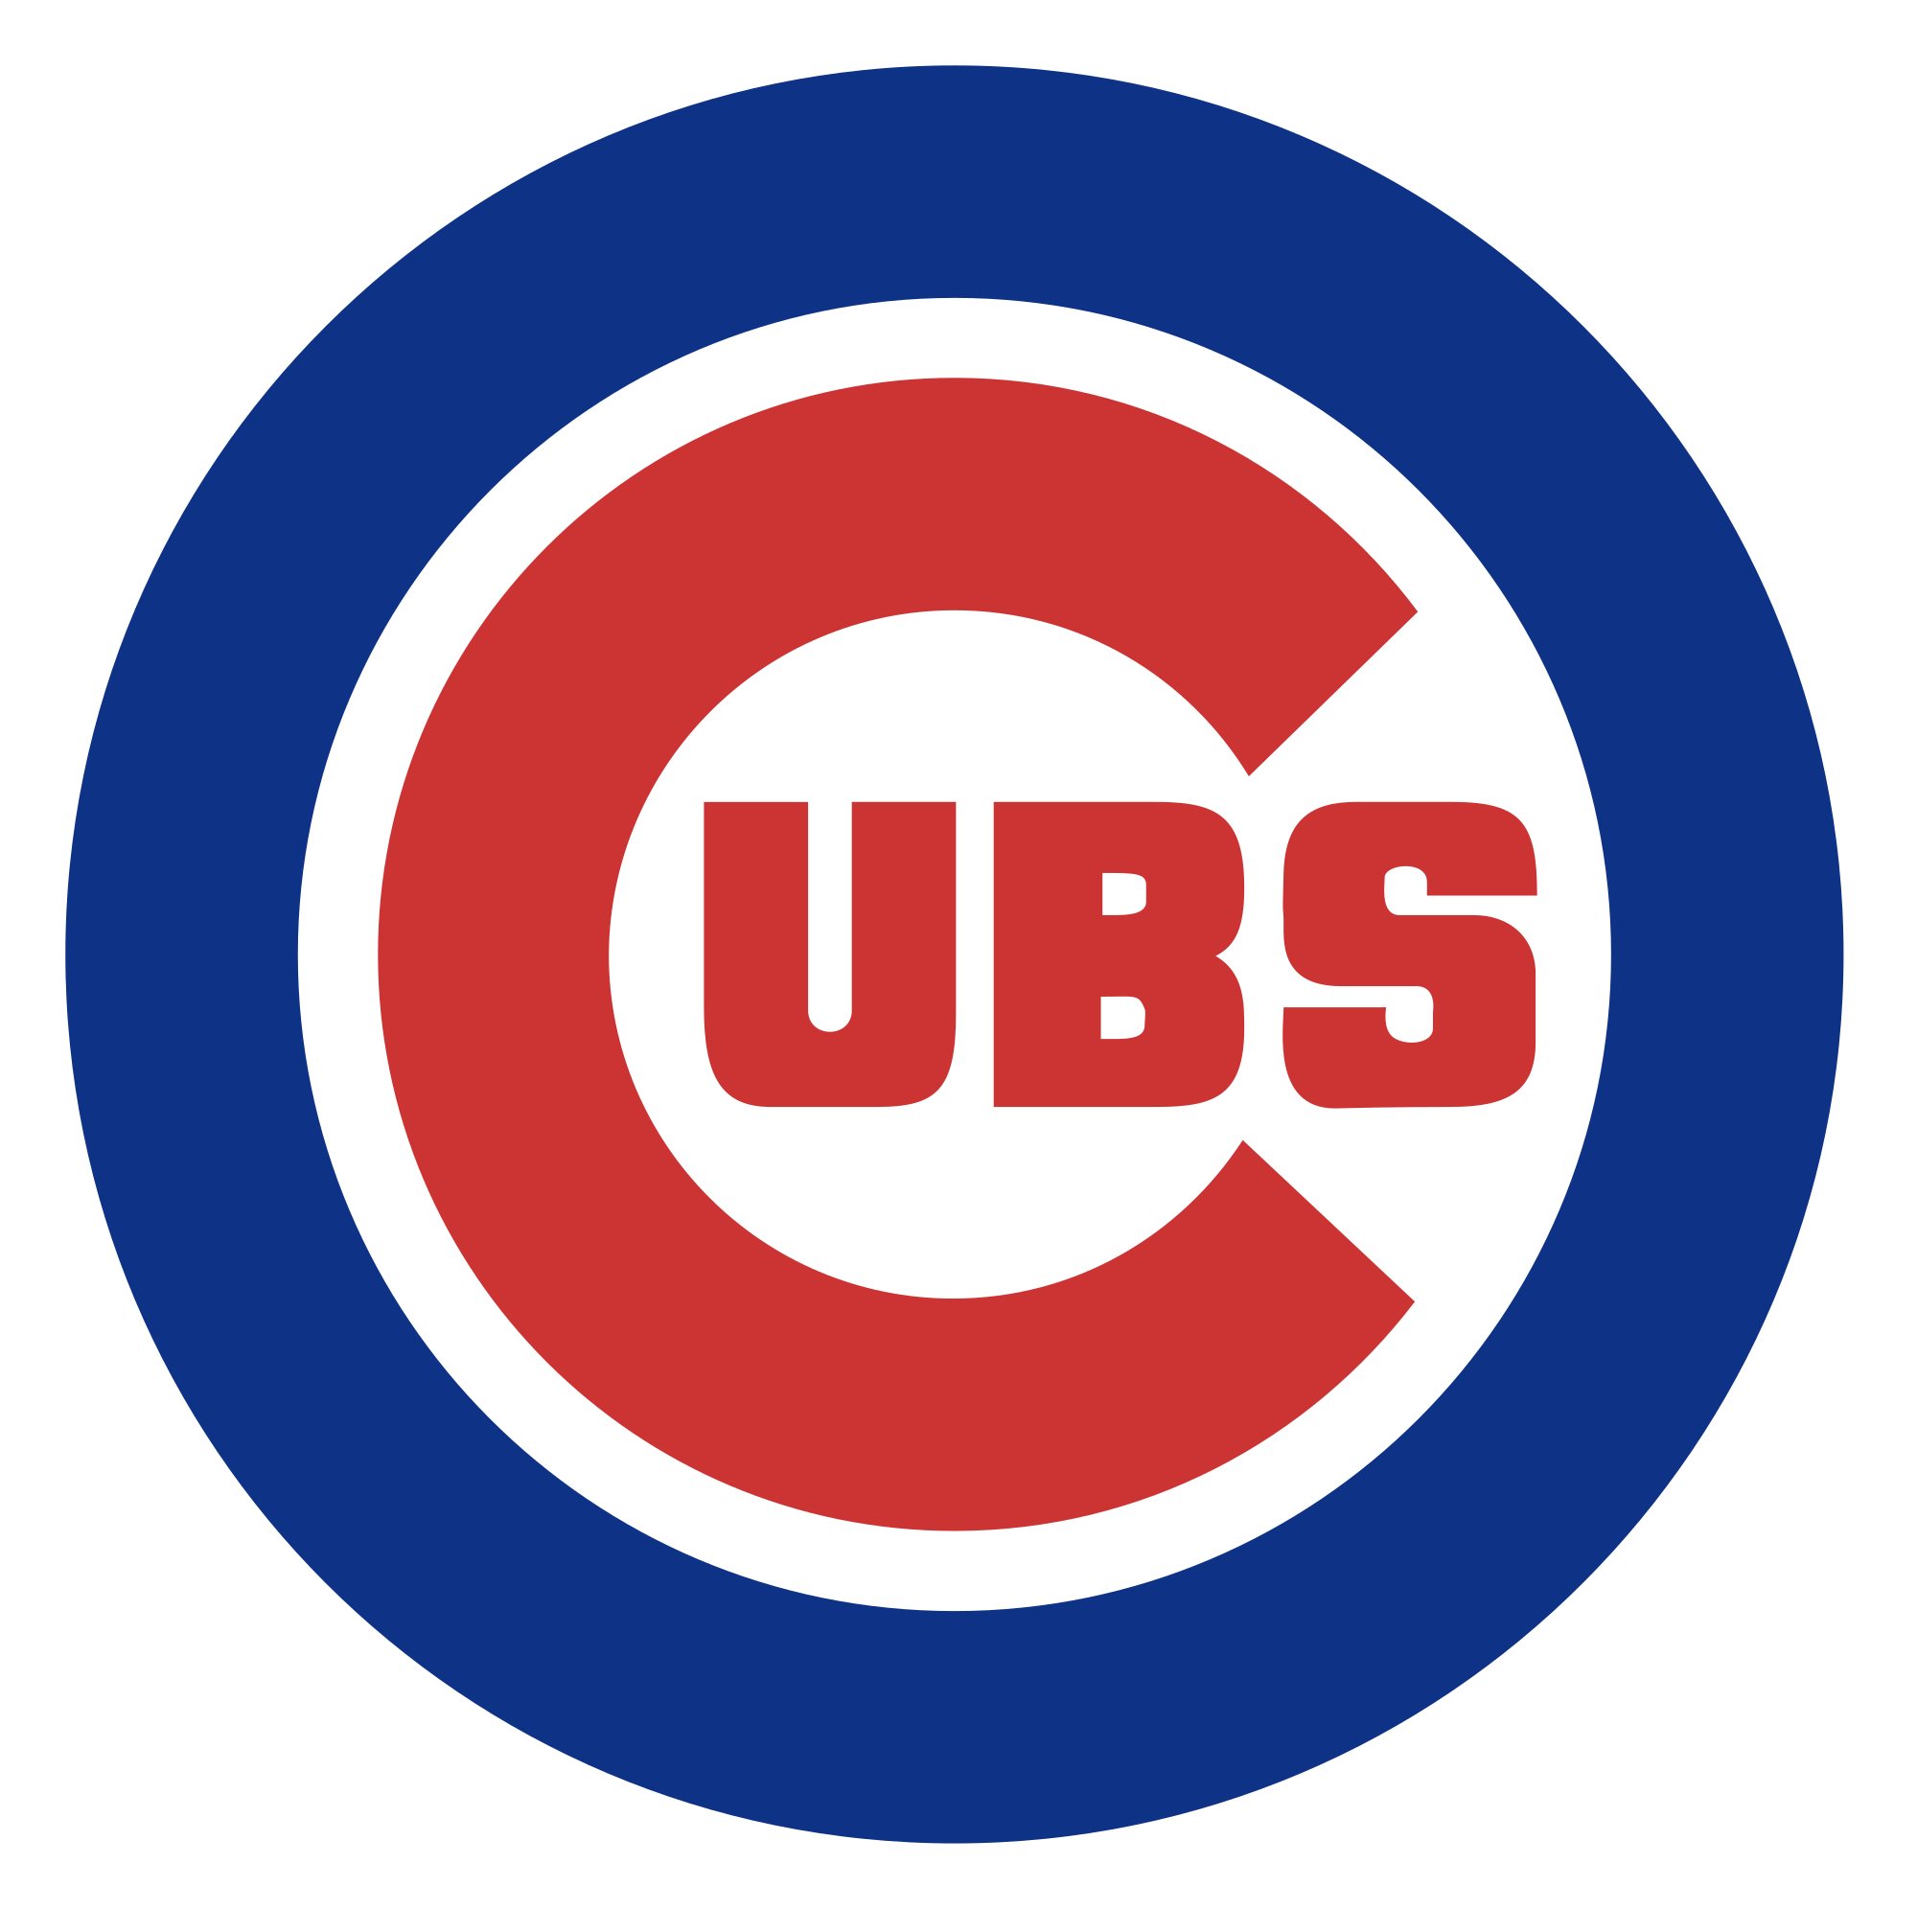 File:Chicago Cubs logo 1919 t